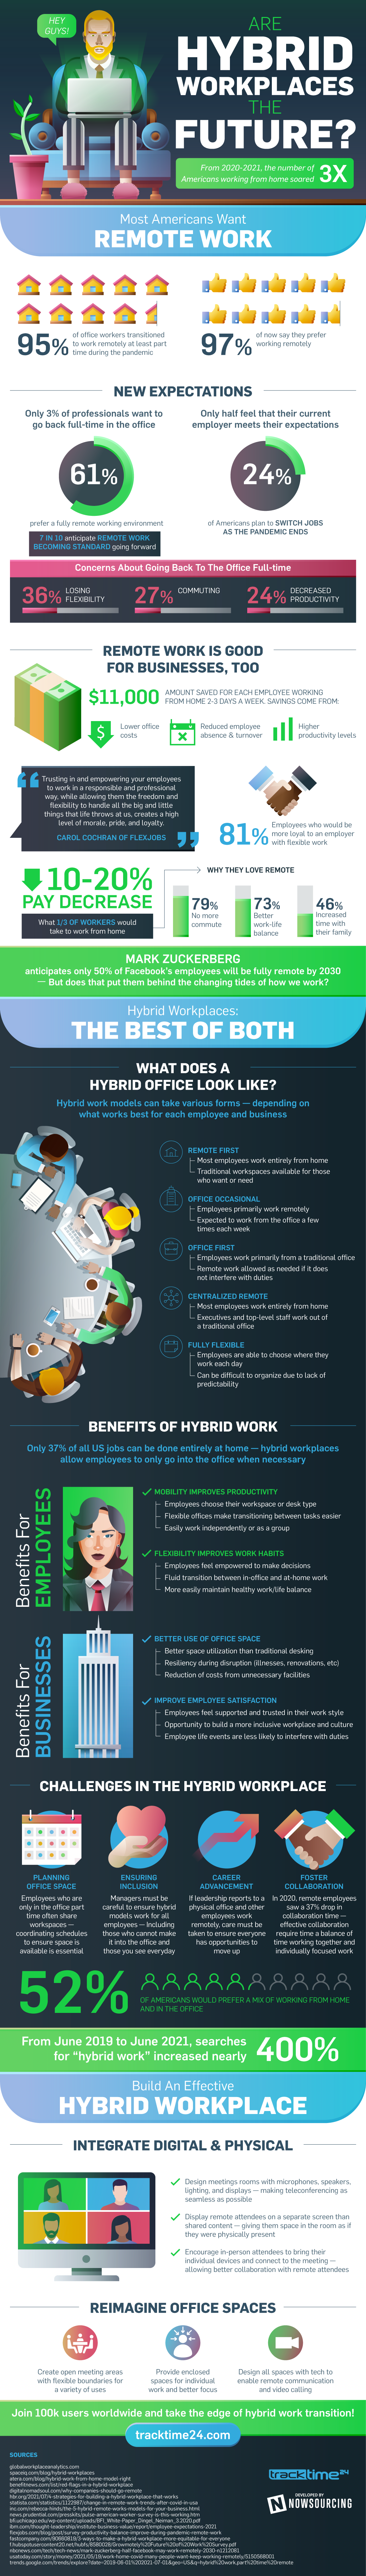 Are Hybrid Workplaces The Future? - TrackTime24.com